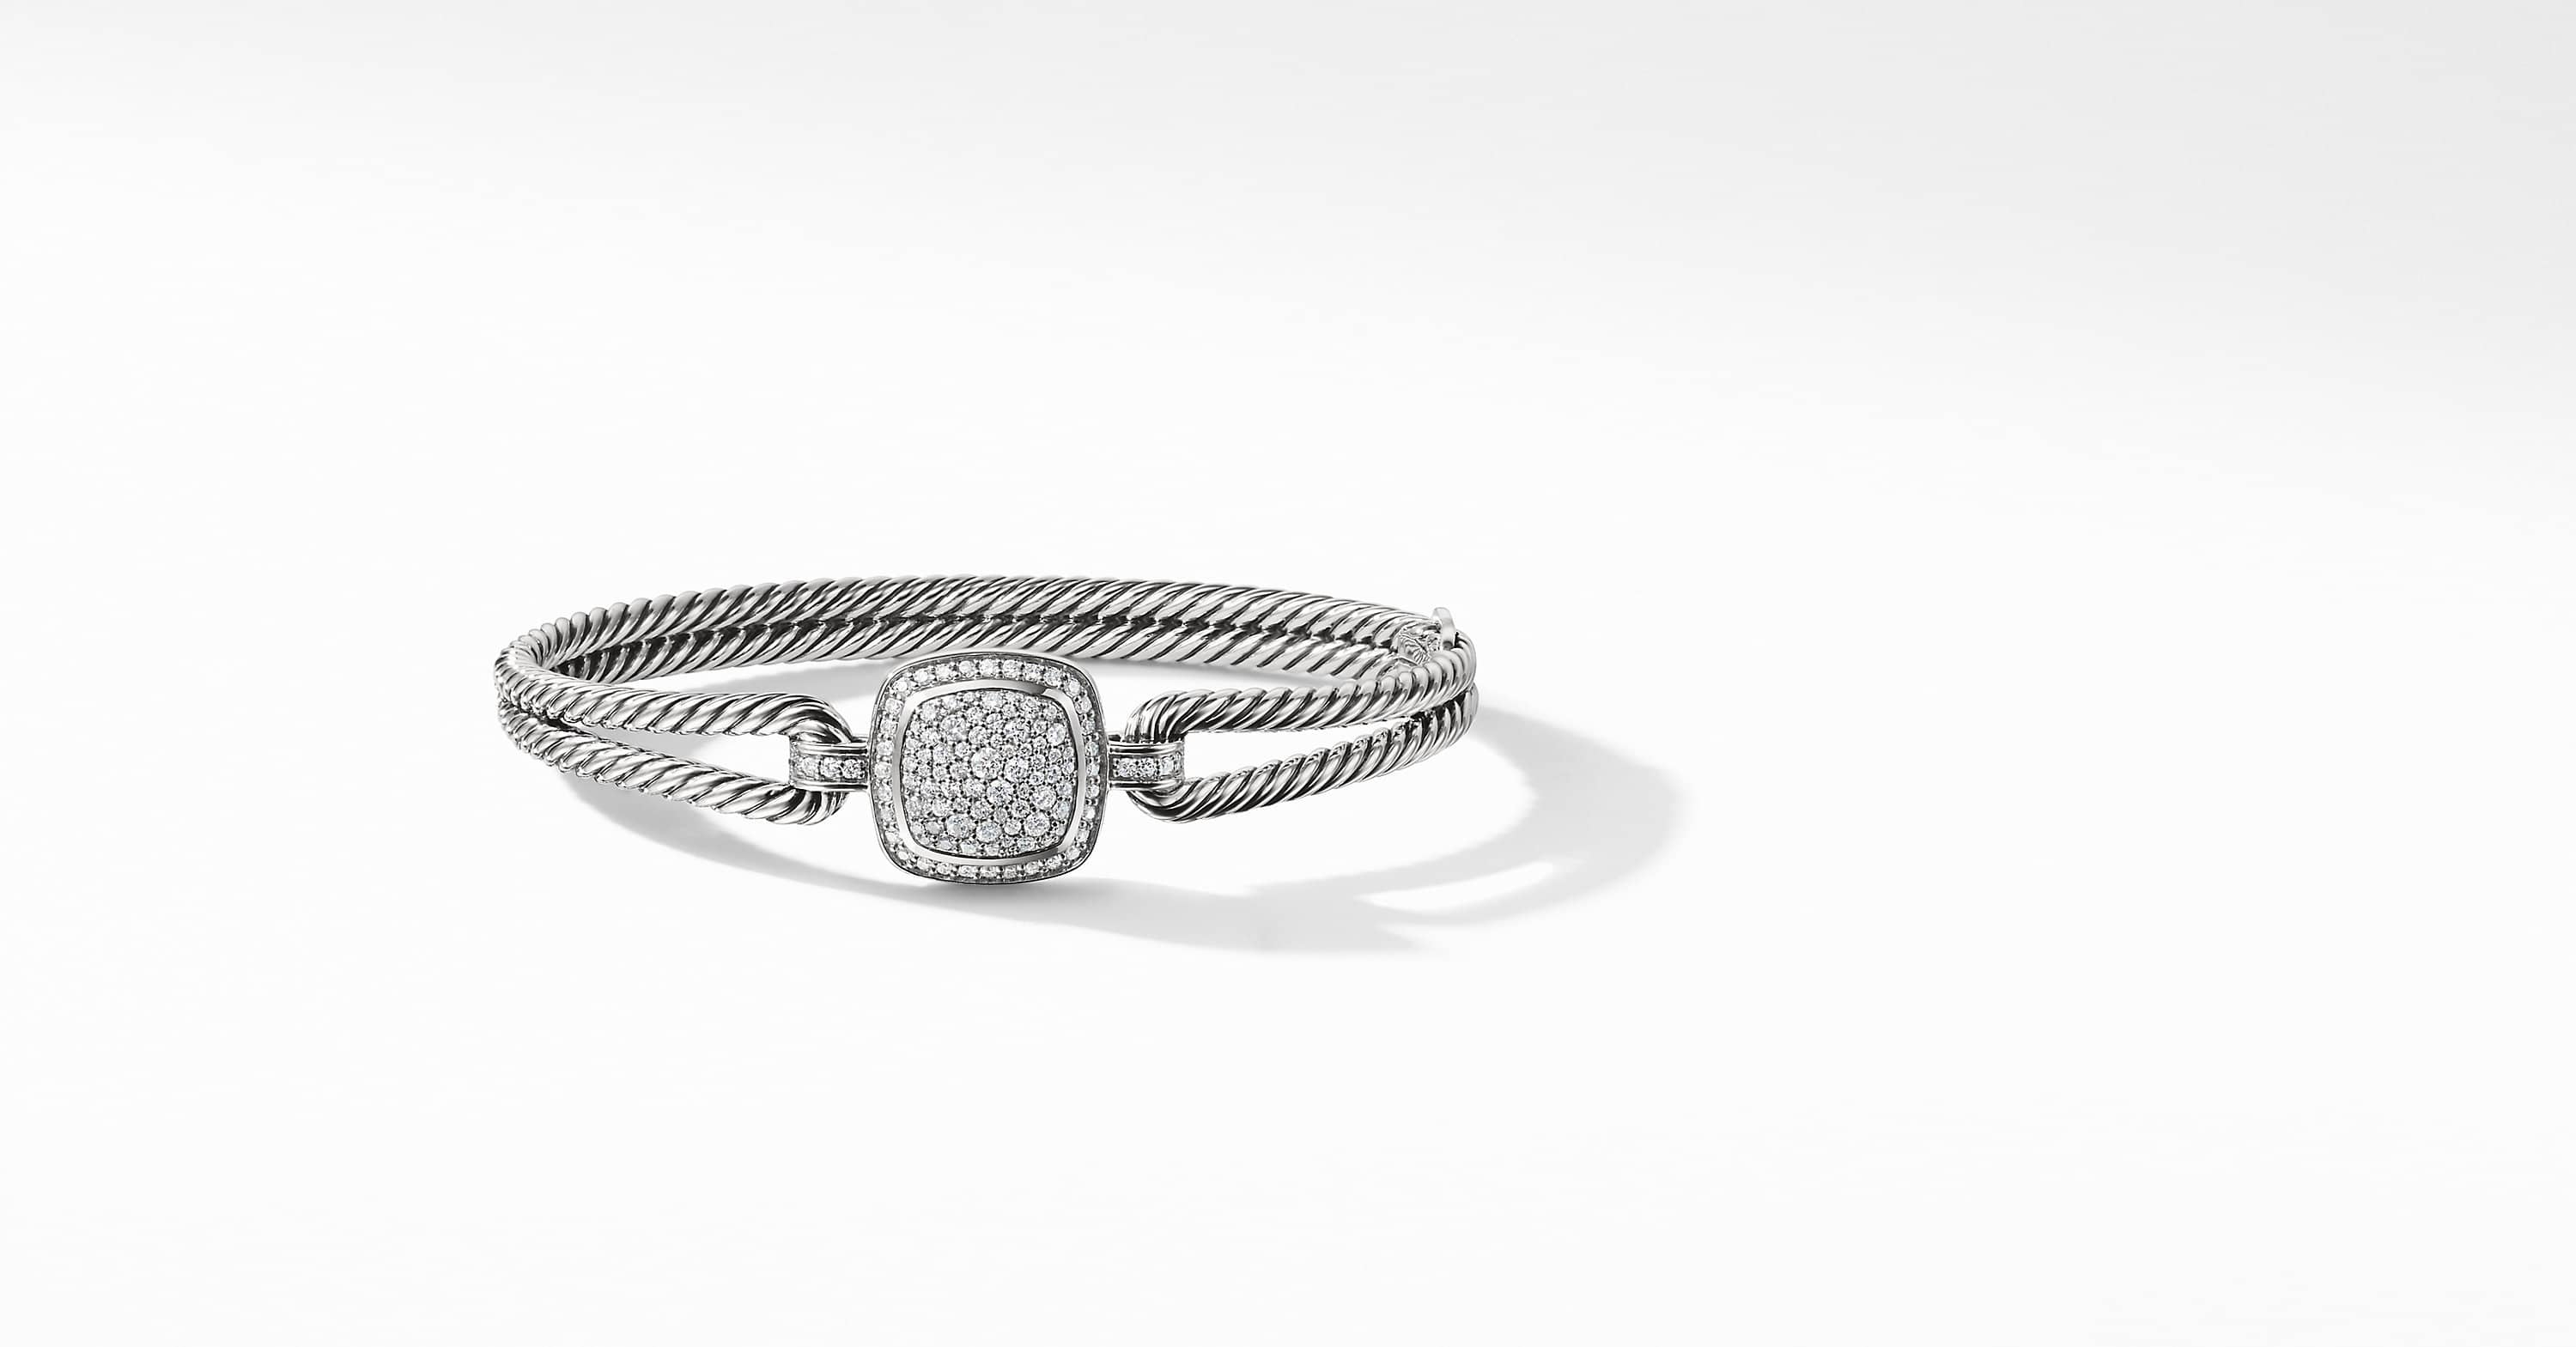 Albion Bracelet with Diamonds, 15mm